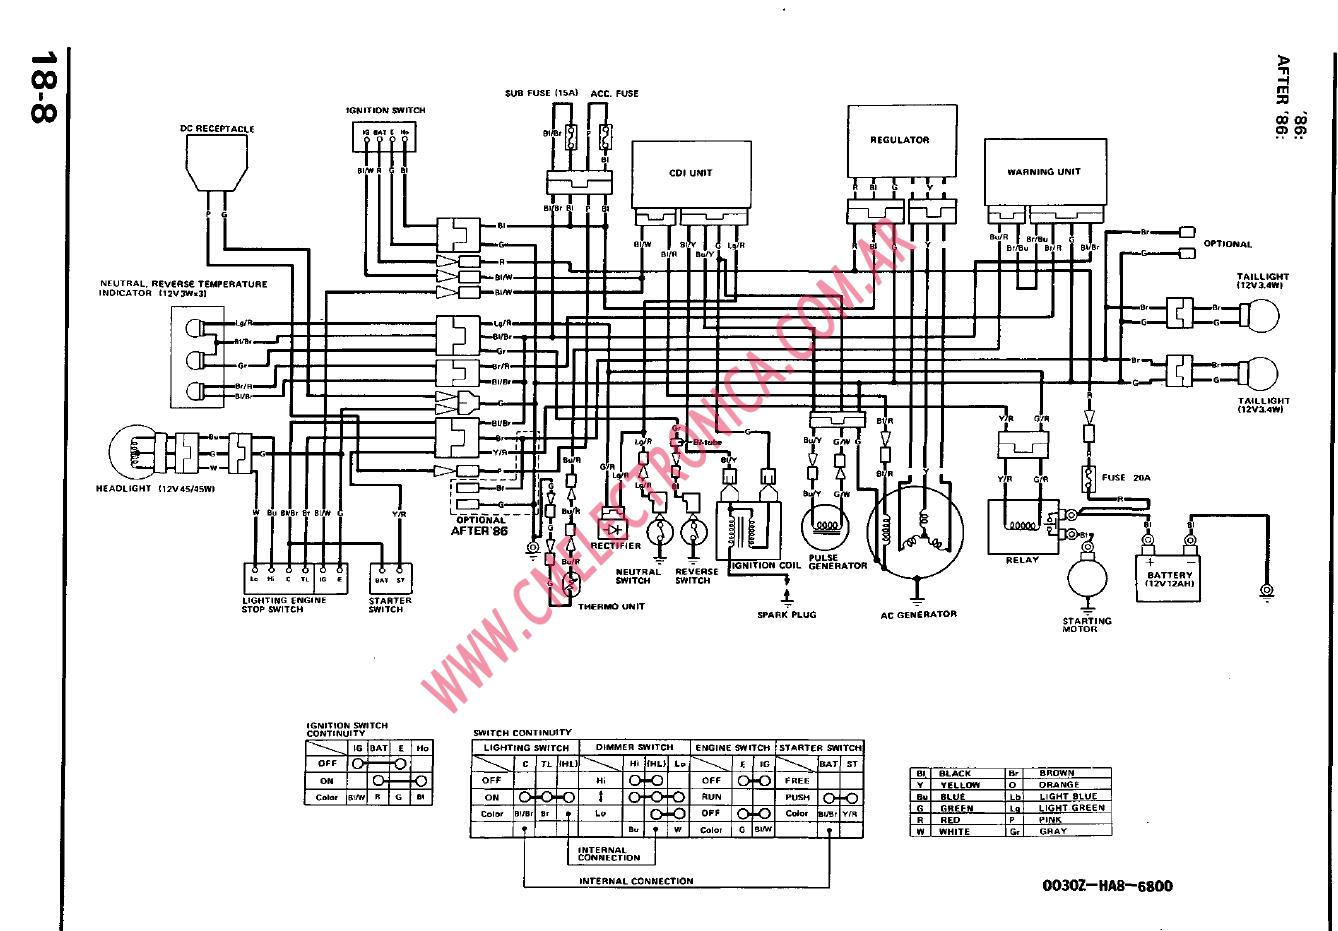 Honda Trx450r Atv Engine Diagram Honda 250R ATV Wiring